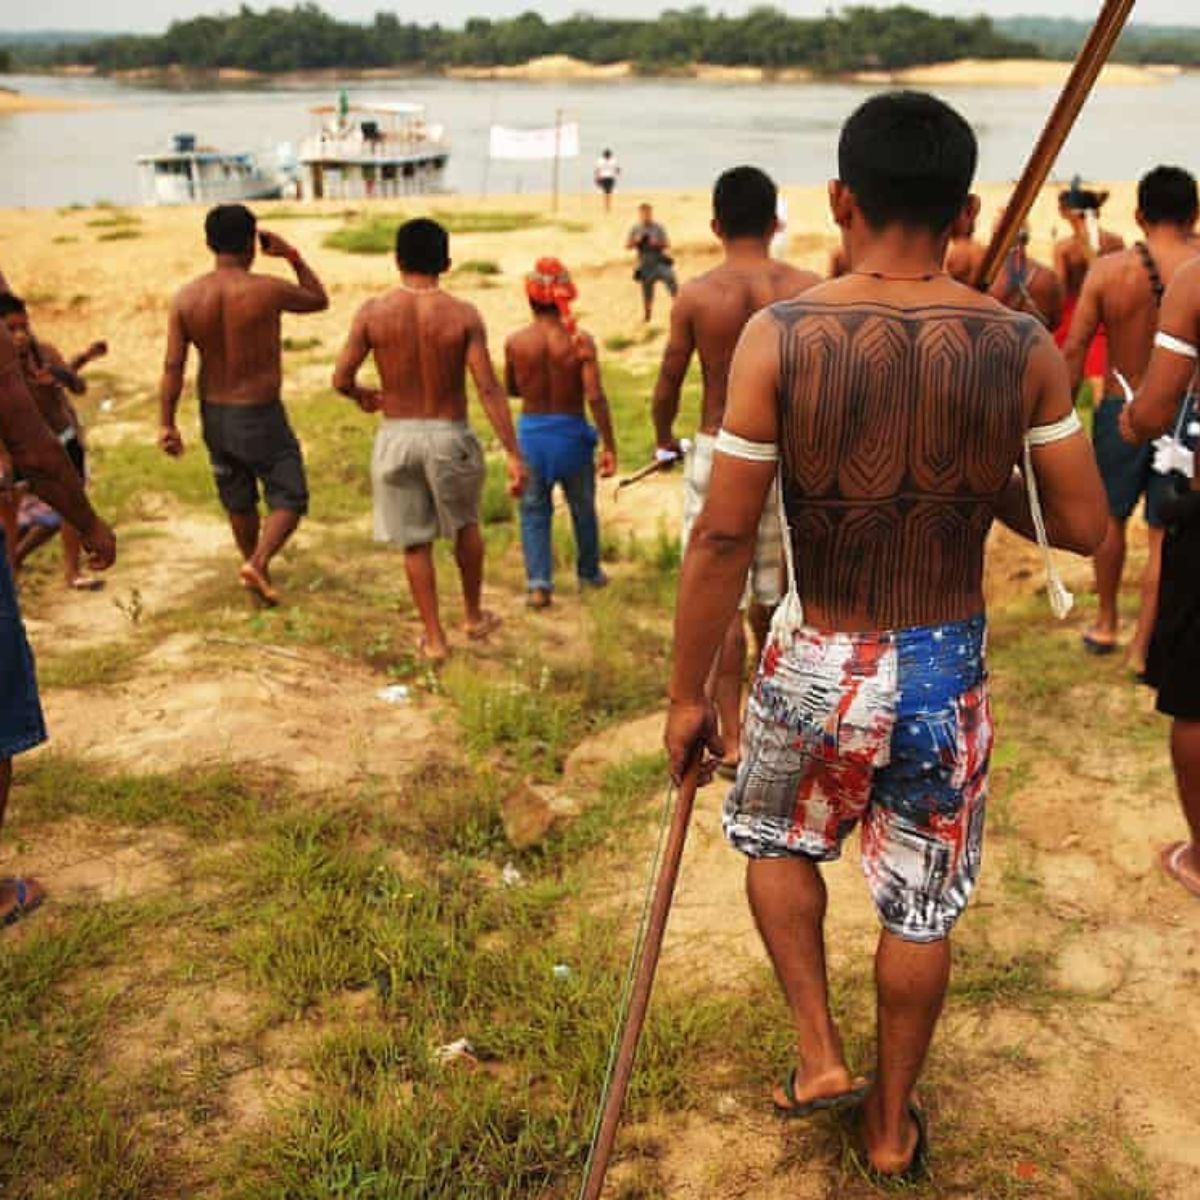 Members of the Munduruku indigenous tribe protest at the construction of a hydroelectric dam on the Tapajos River in the Amazon rainforest, 2014. Photograph: Mario Tama/Getty Images